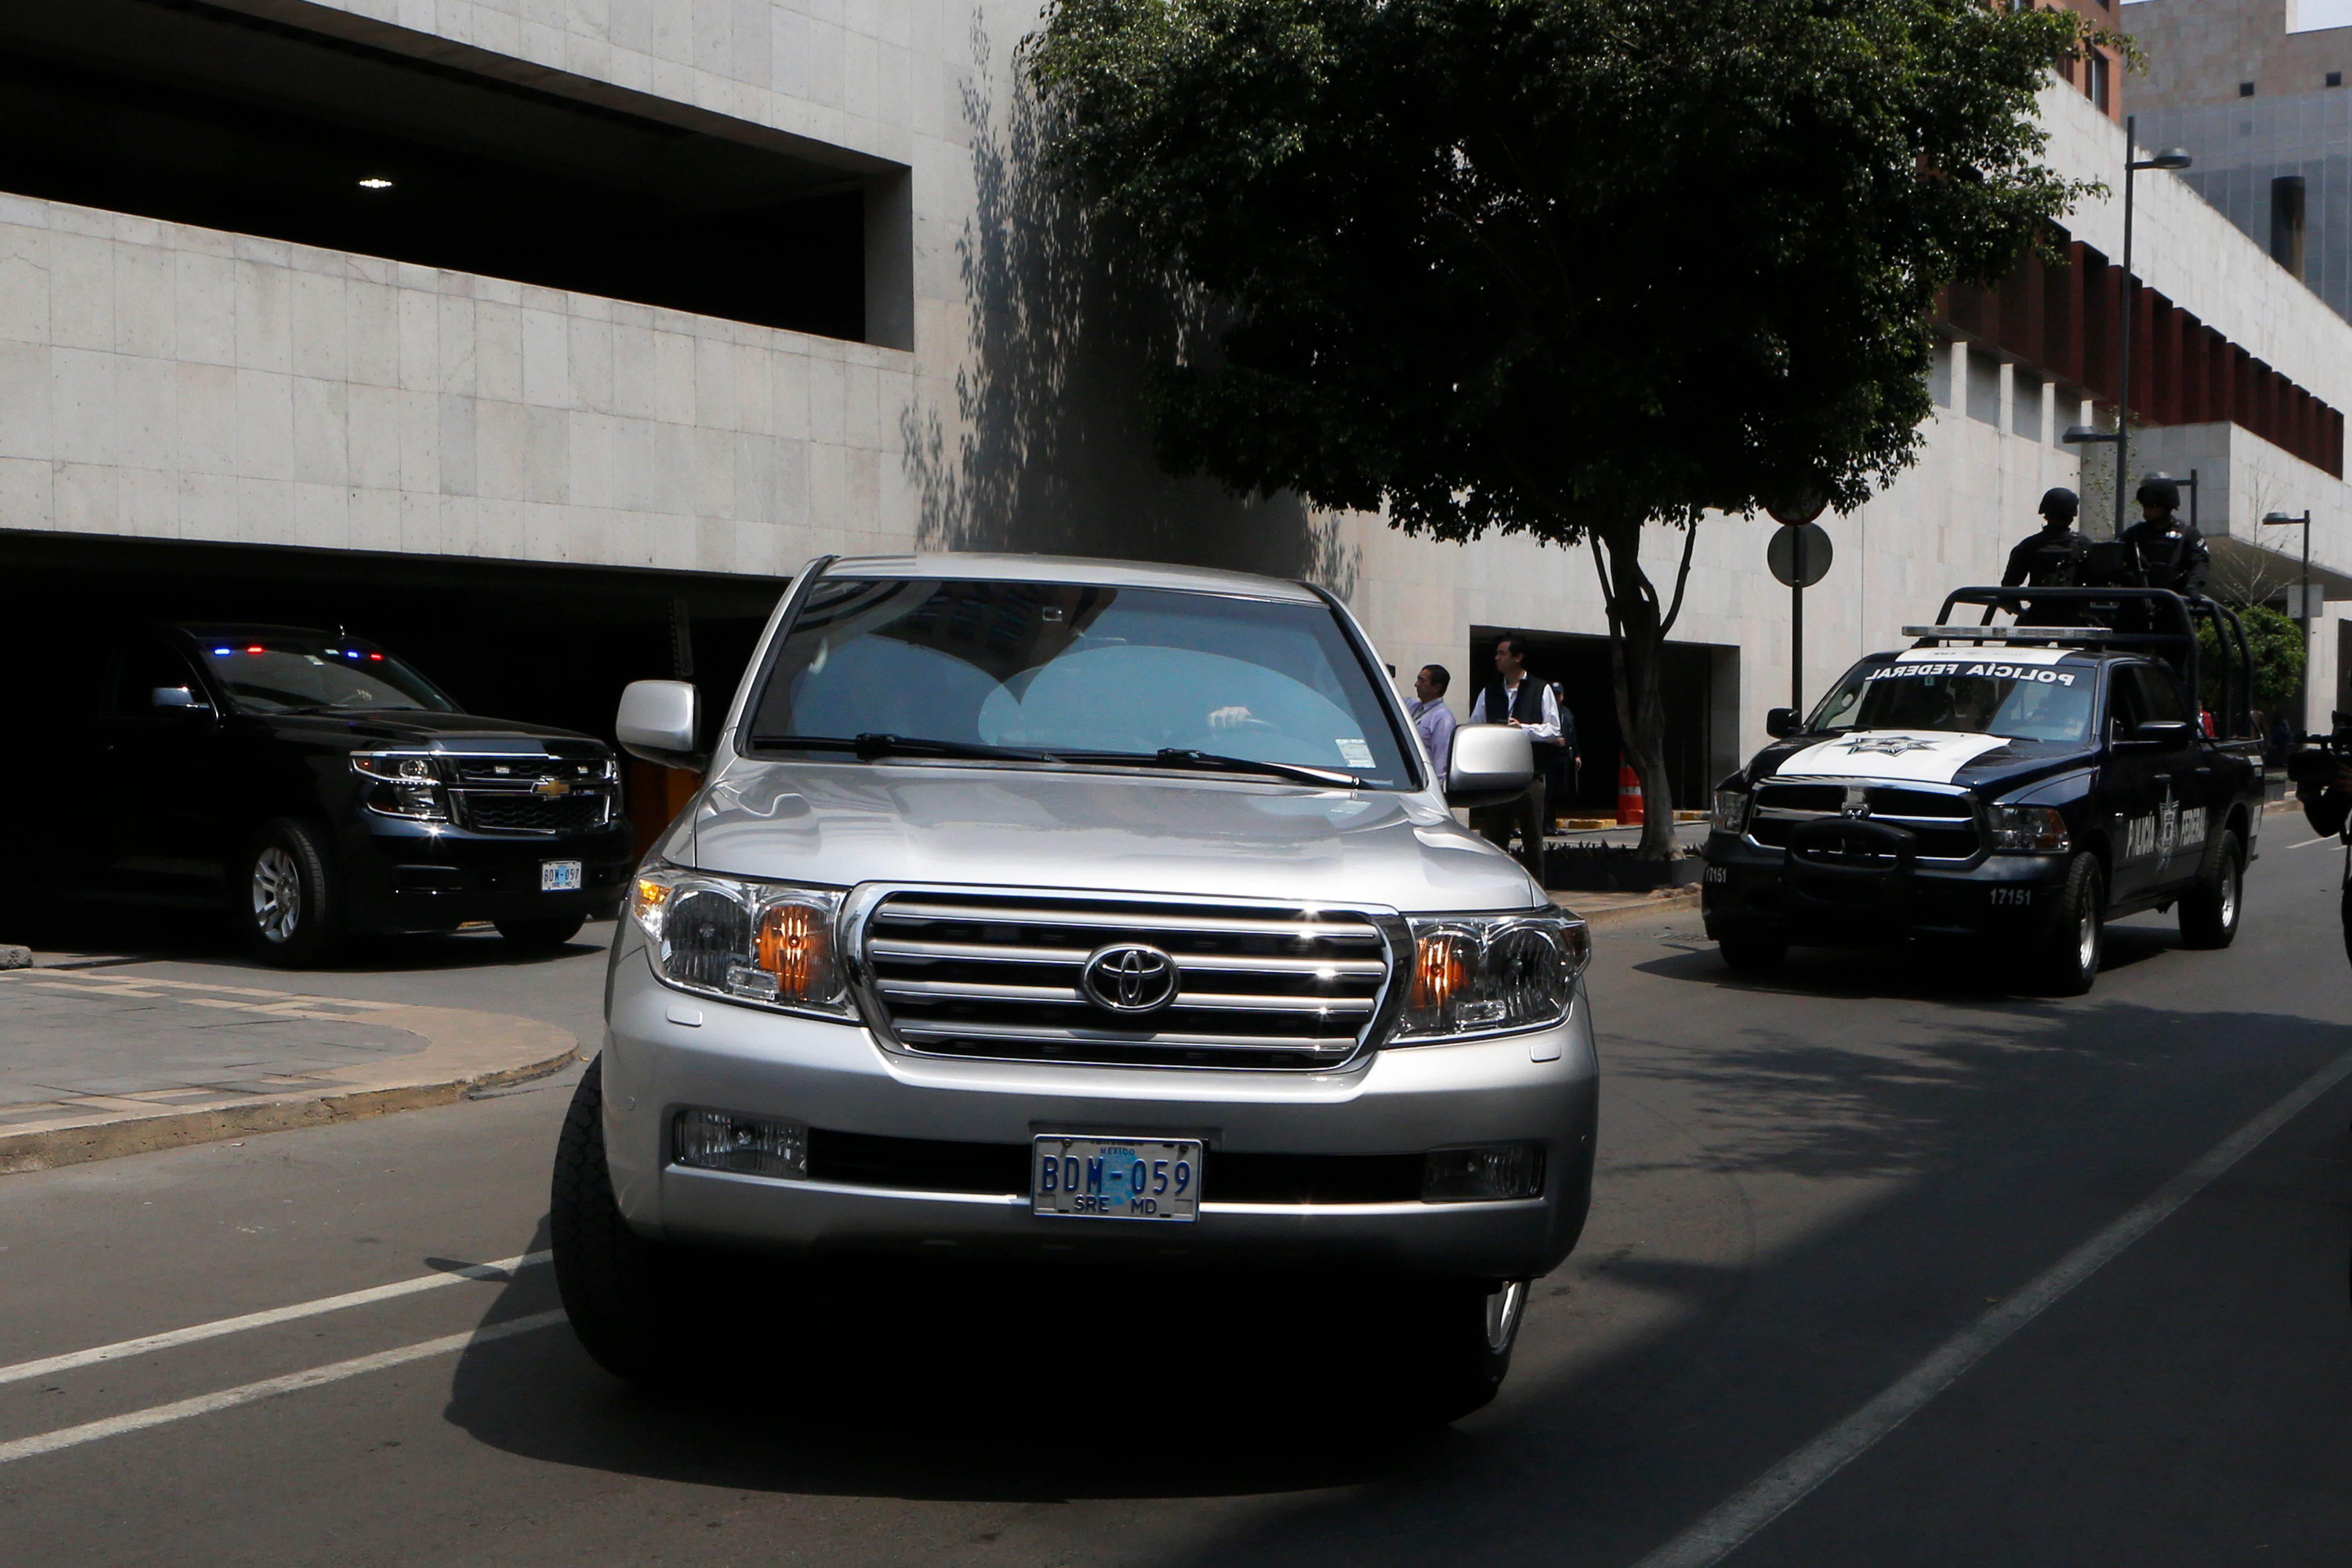 A convoy transporting White House envoy Jared Kushner leaves the Foreign Ministry and heads to the presidential residence Los Pinos, in Mexico City, Wednesday, March 7, 2018. The senior White House adviser and presidential son-in-law was meeting with Mexico's president and foreign minister Wednesday amid heightened tensions over the border wall and trade. (AP Photo/Marco Ugarte)